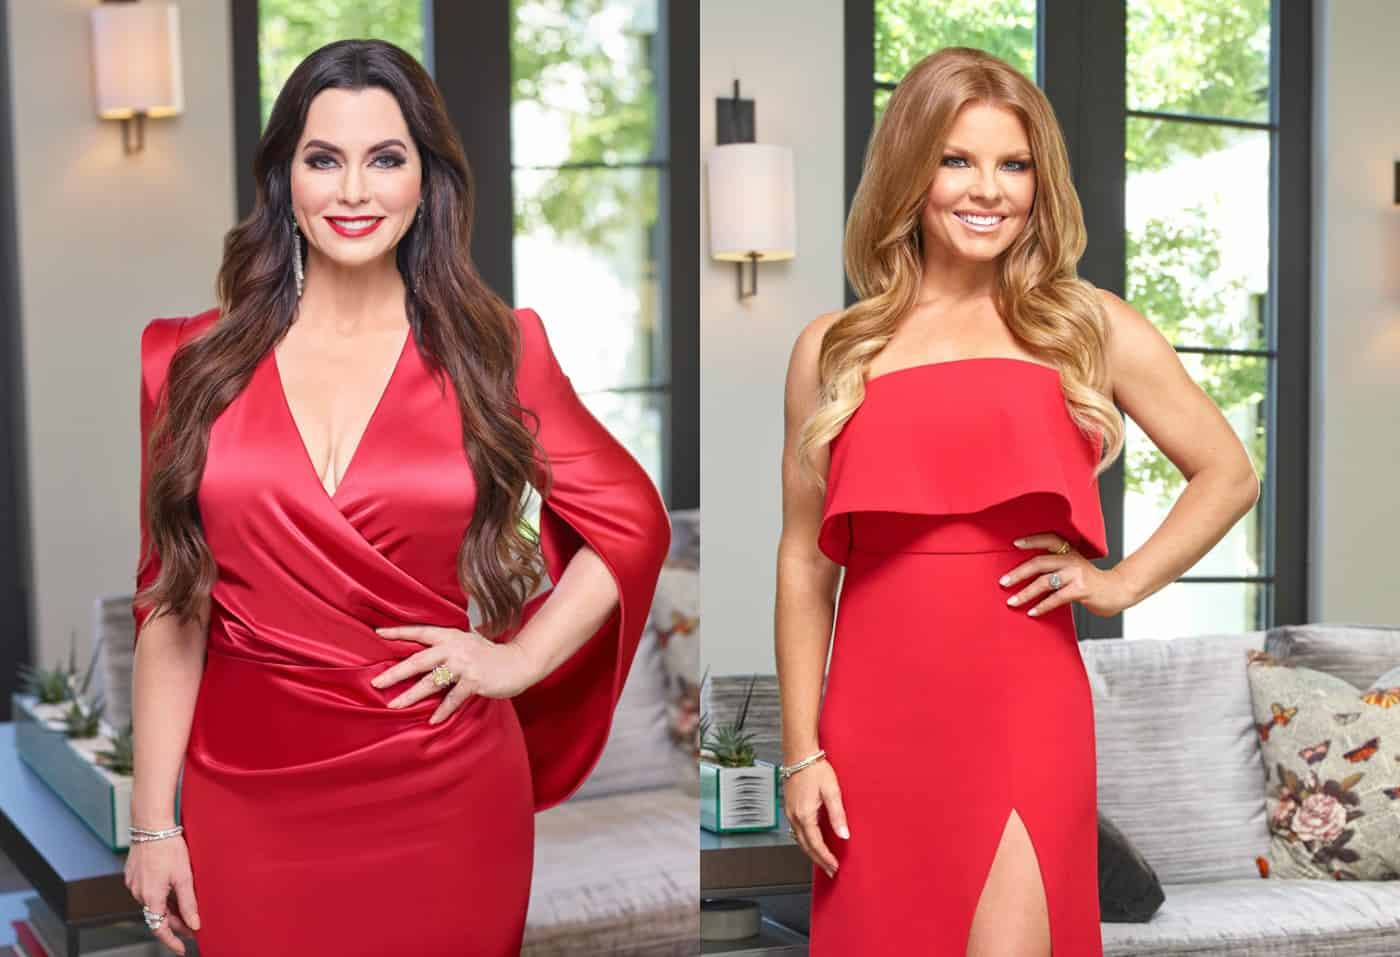 The RHOD Season 3 D'Andra Simmons and Brandi Redmond